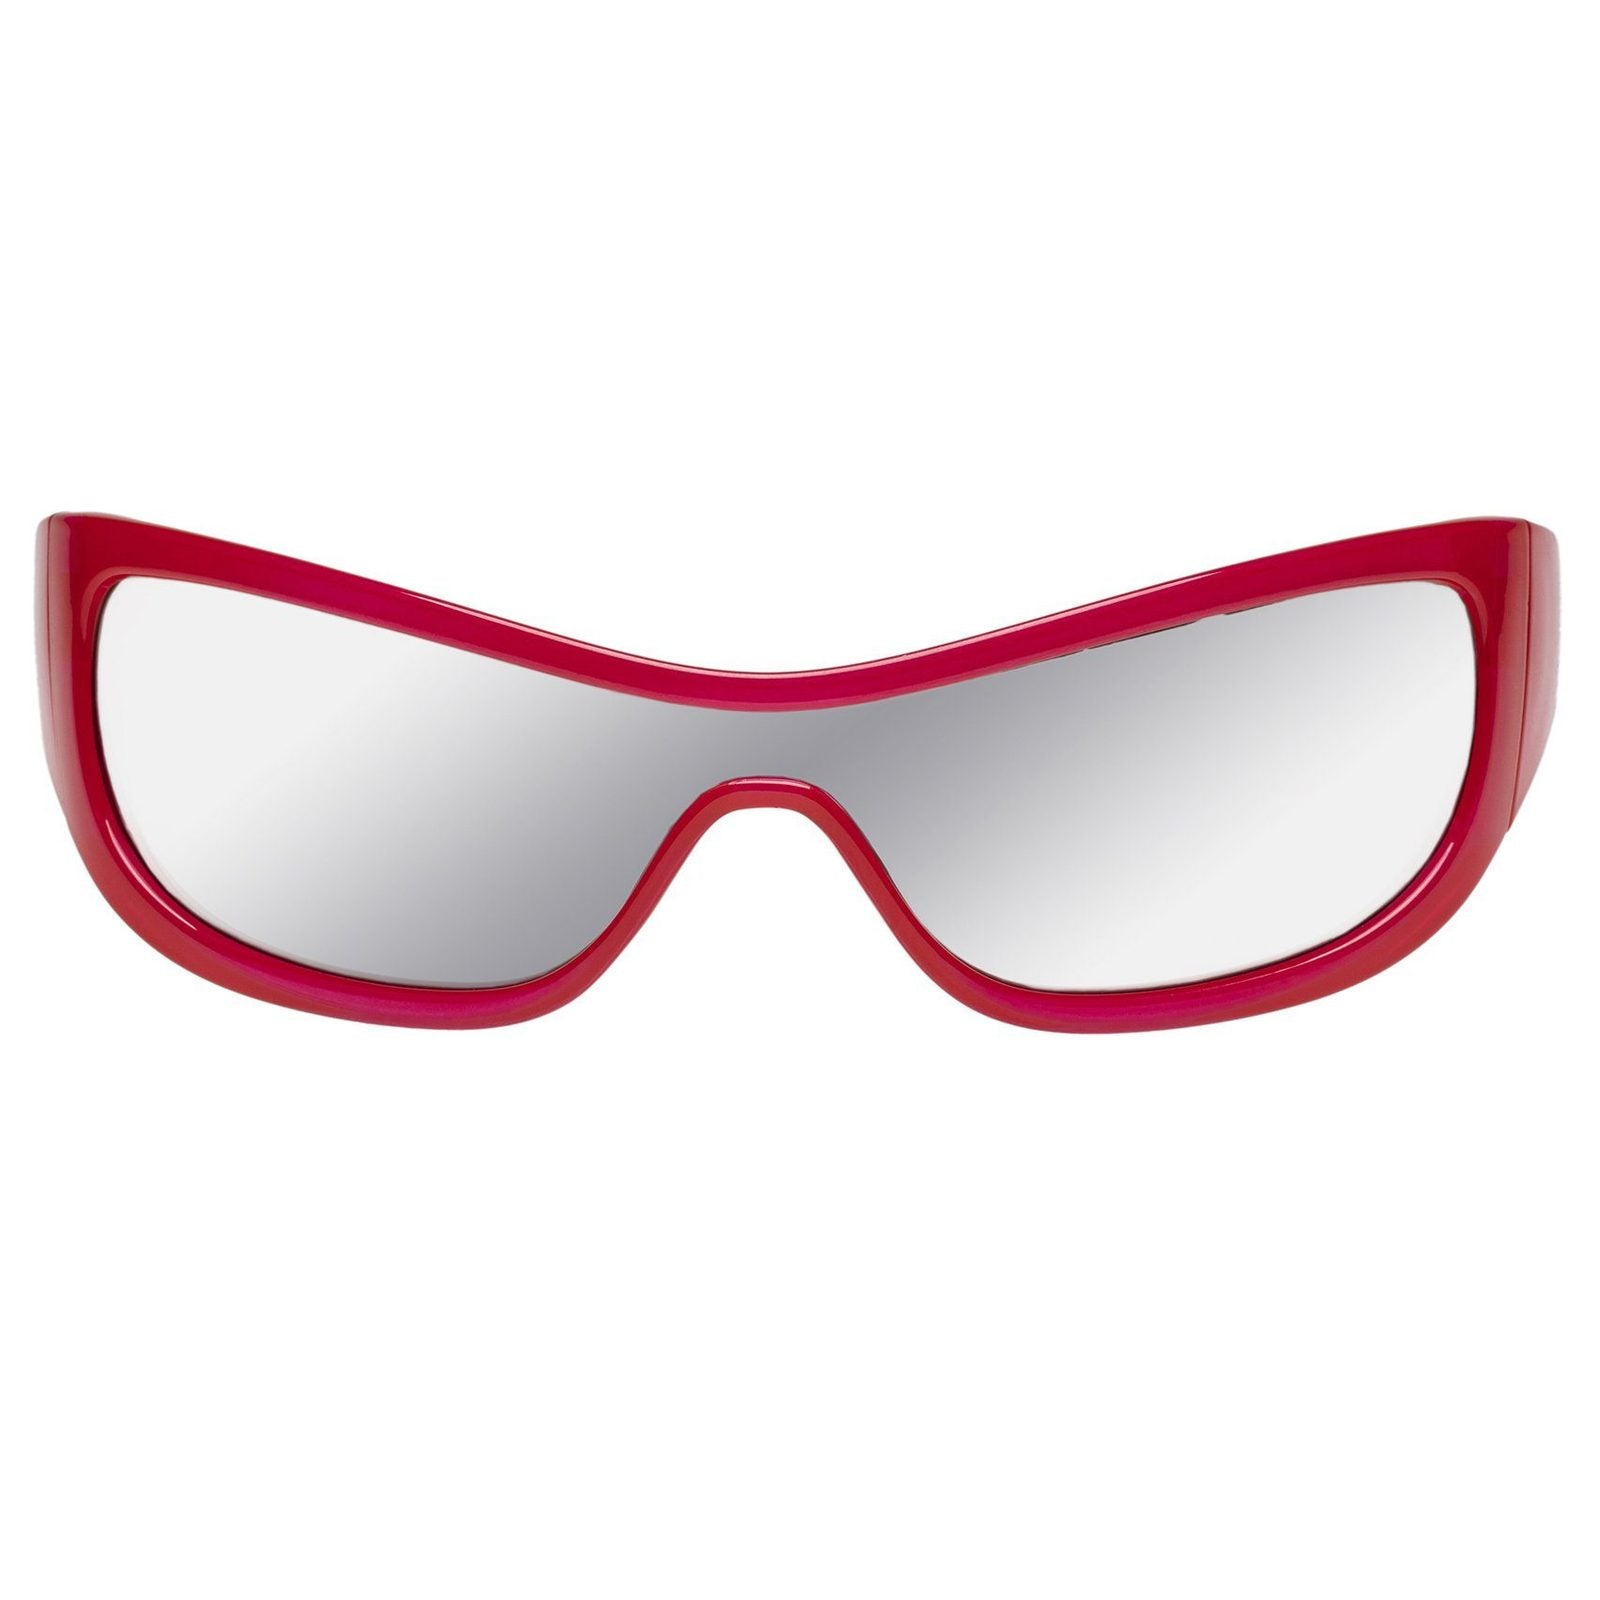 ADAM SELMAN X LE SPECS  / THE MONSTER / RED